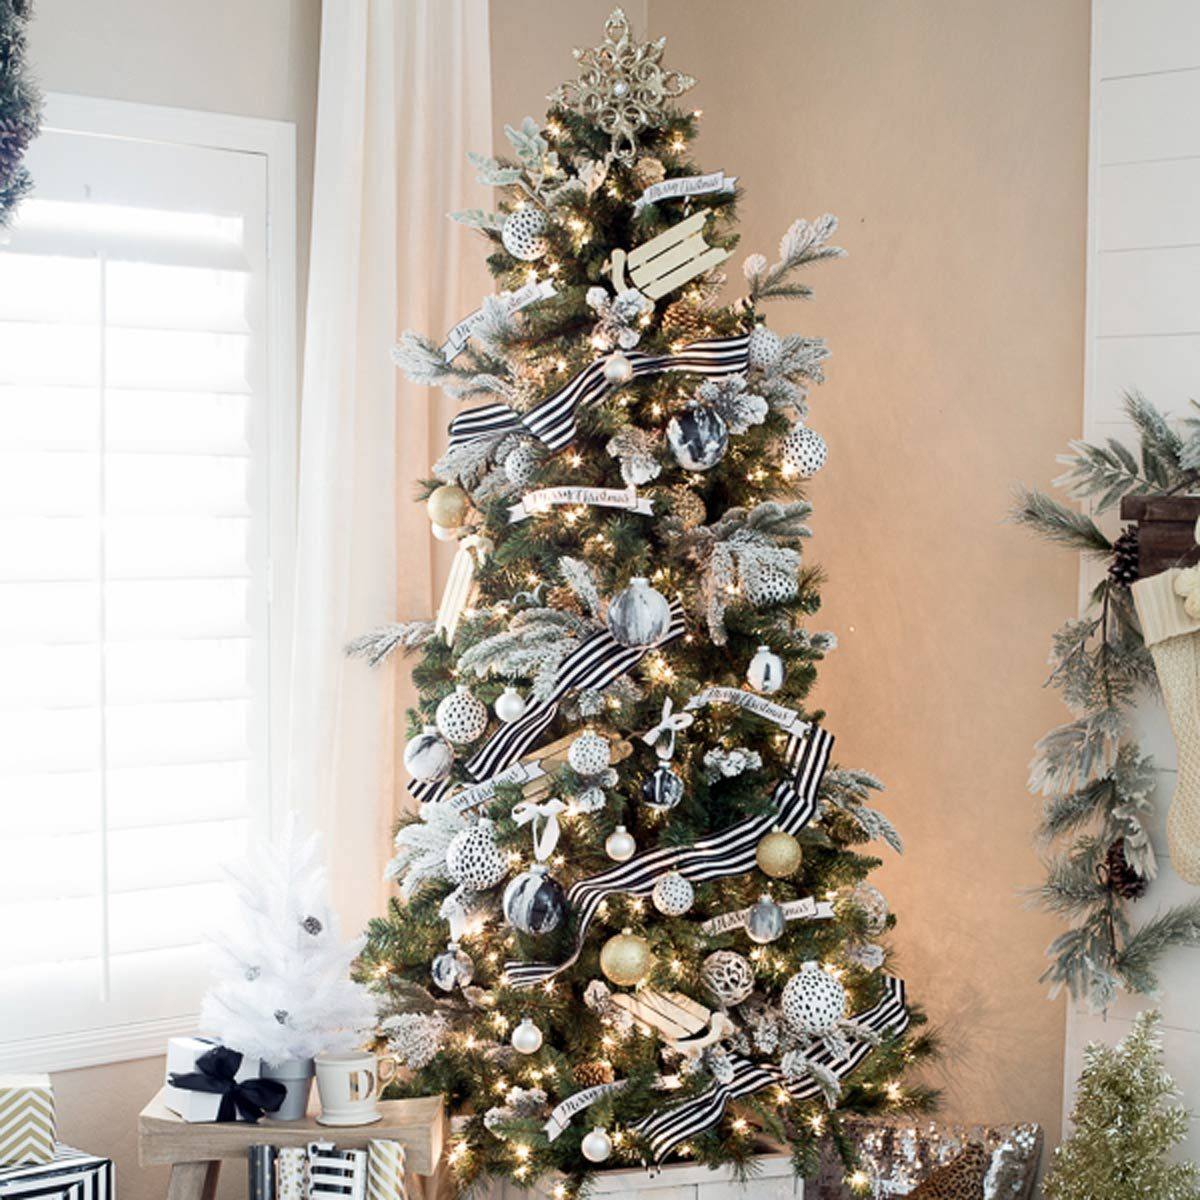 Christmas Tree Design Ideas: Black and White Christmas